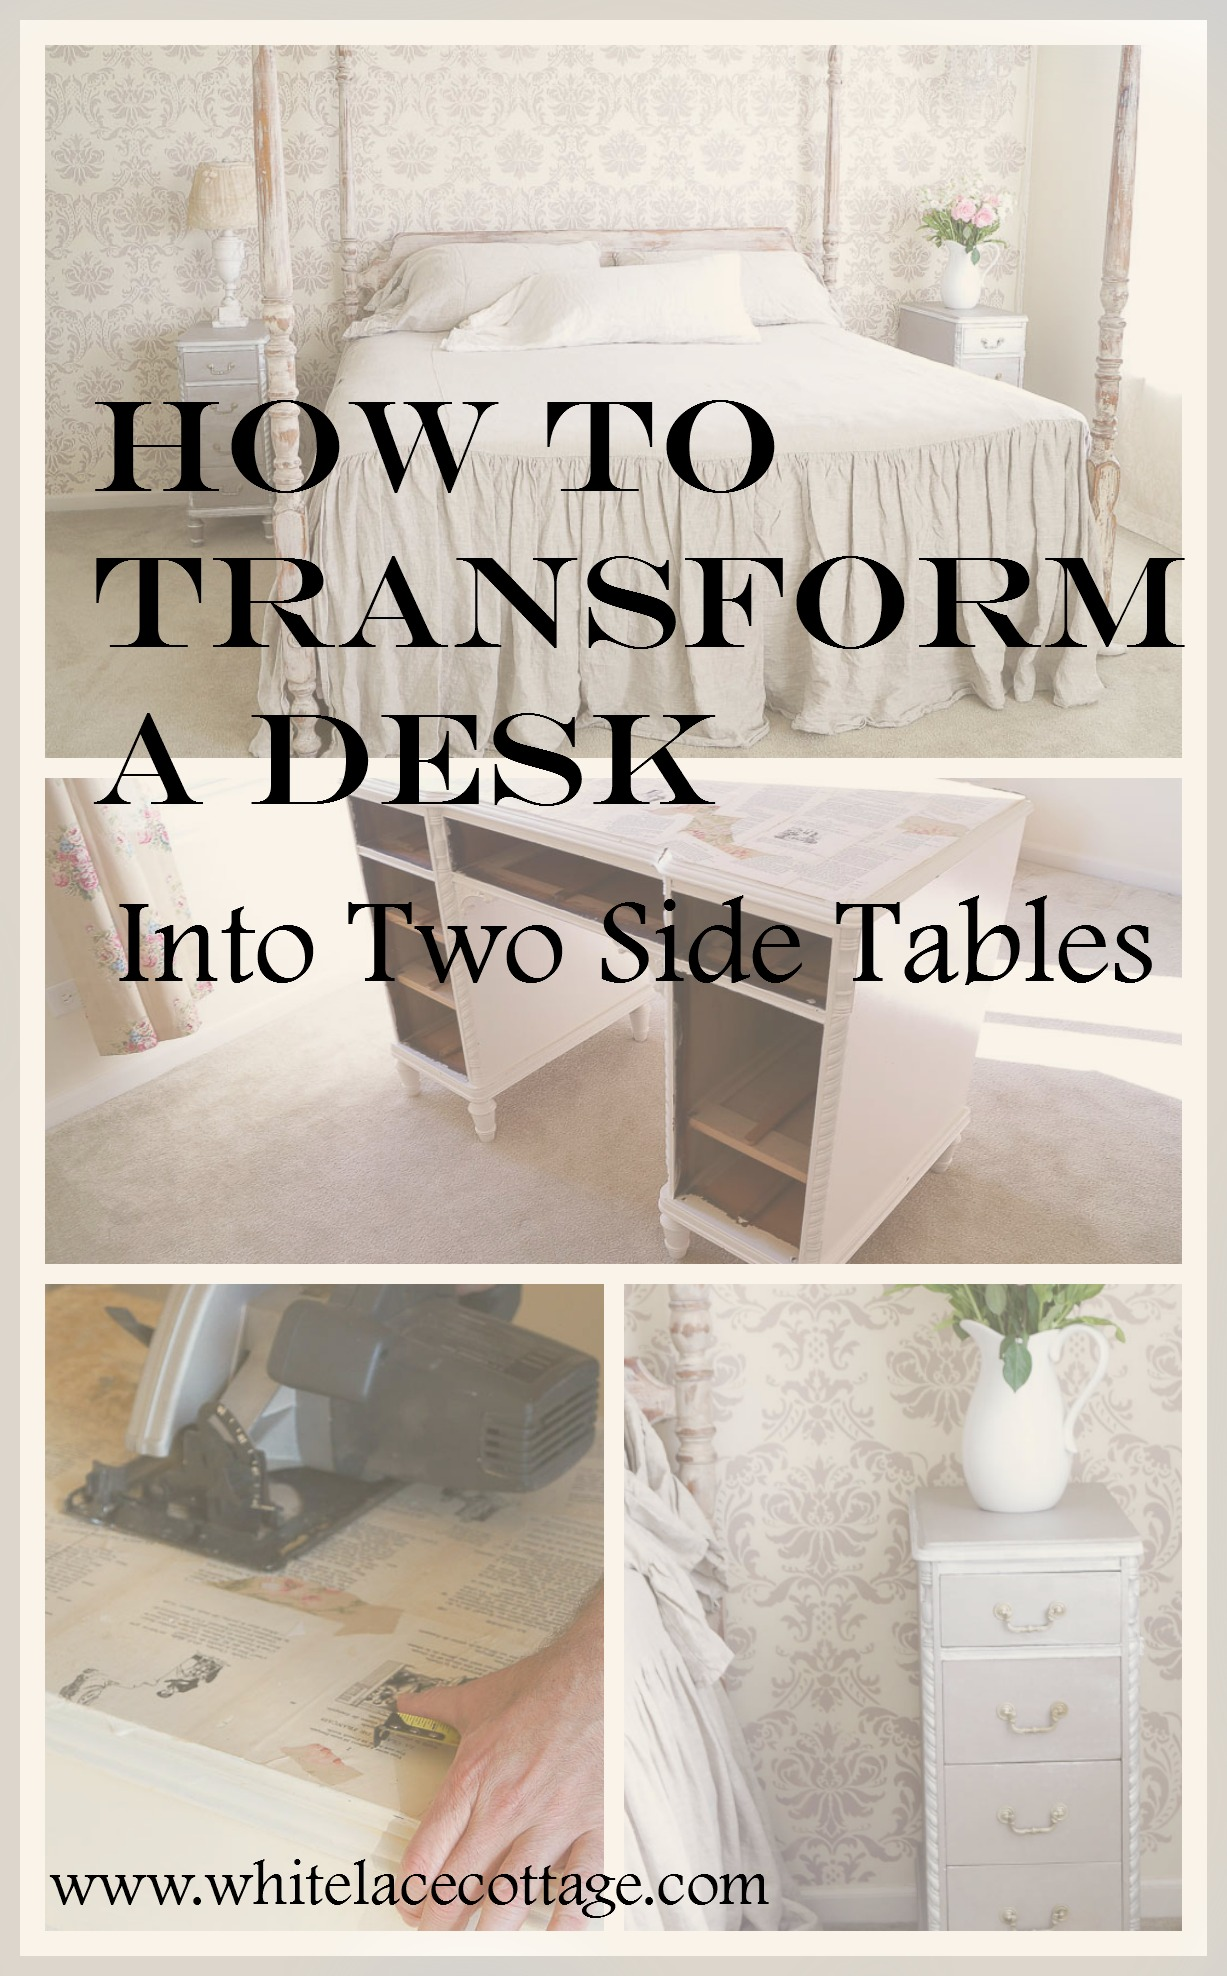 How to transform a desk into two side tables